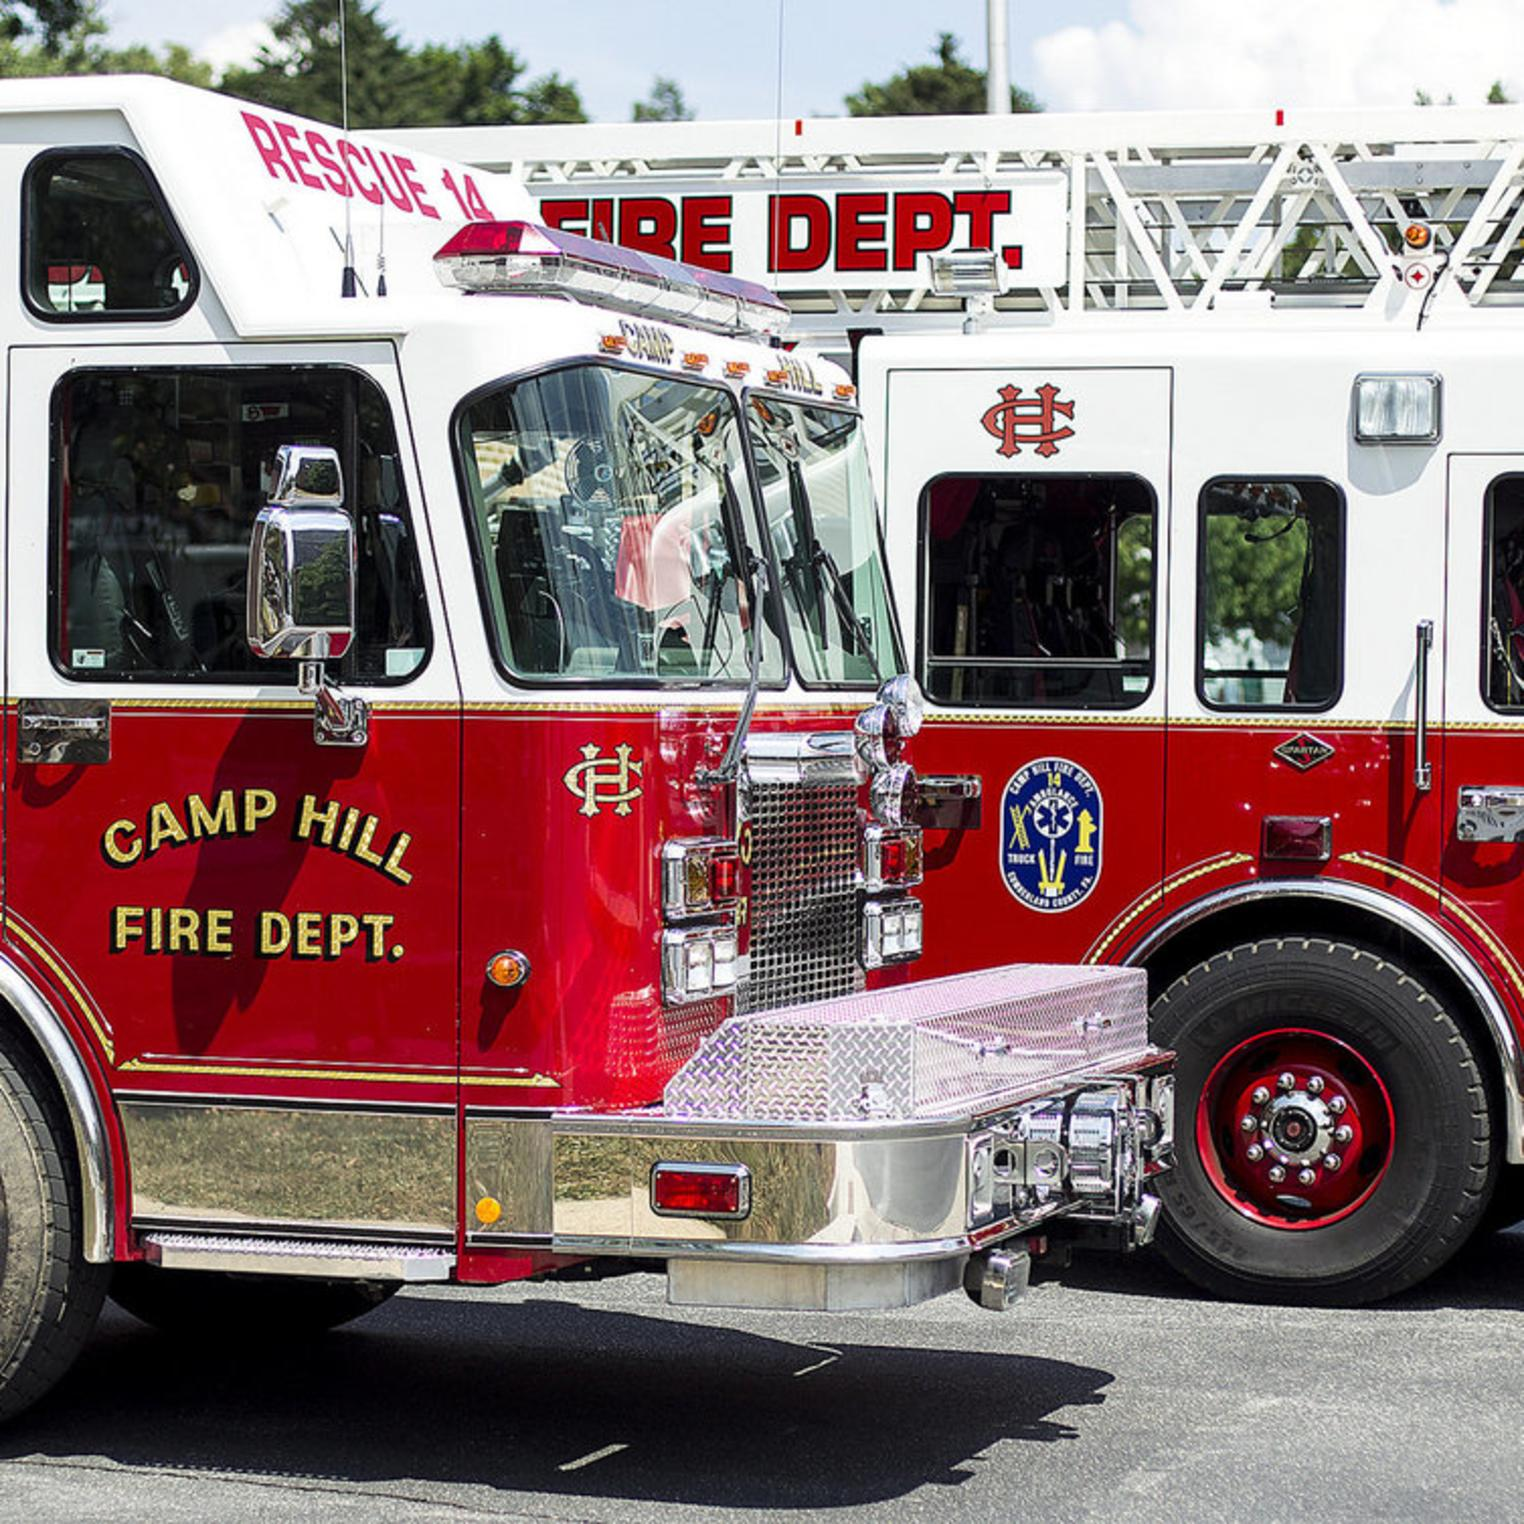 Camp Hill Fire Department